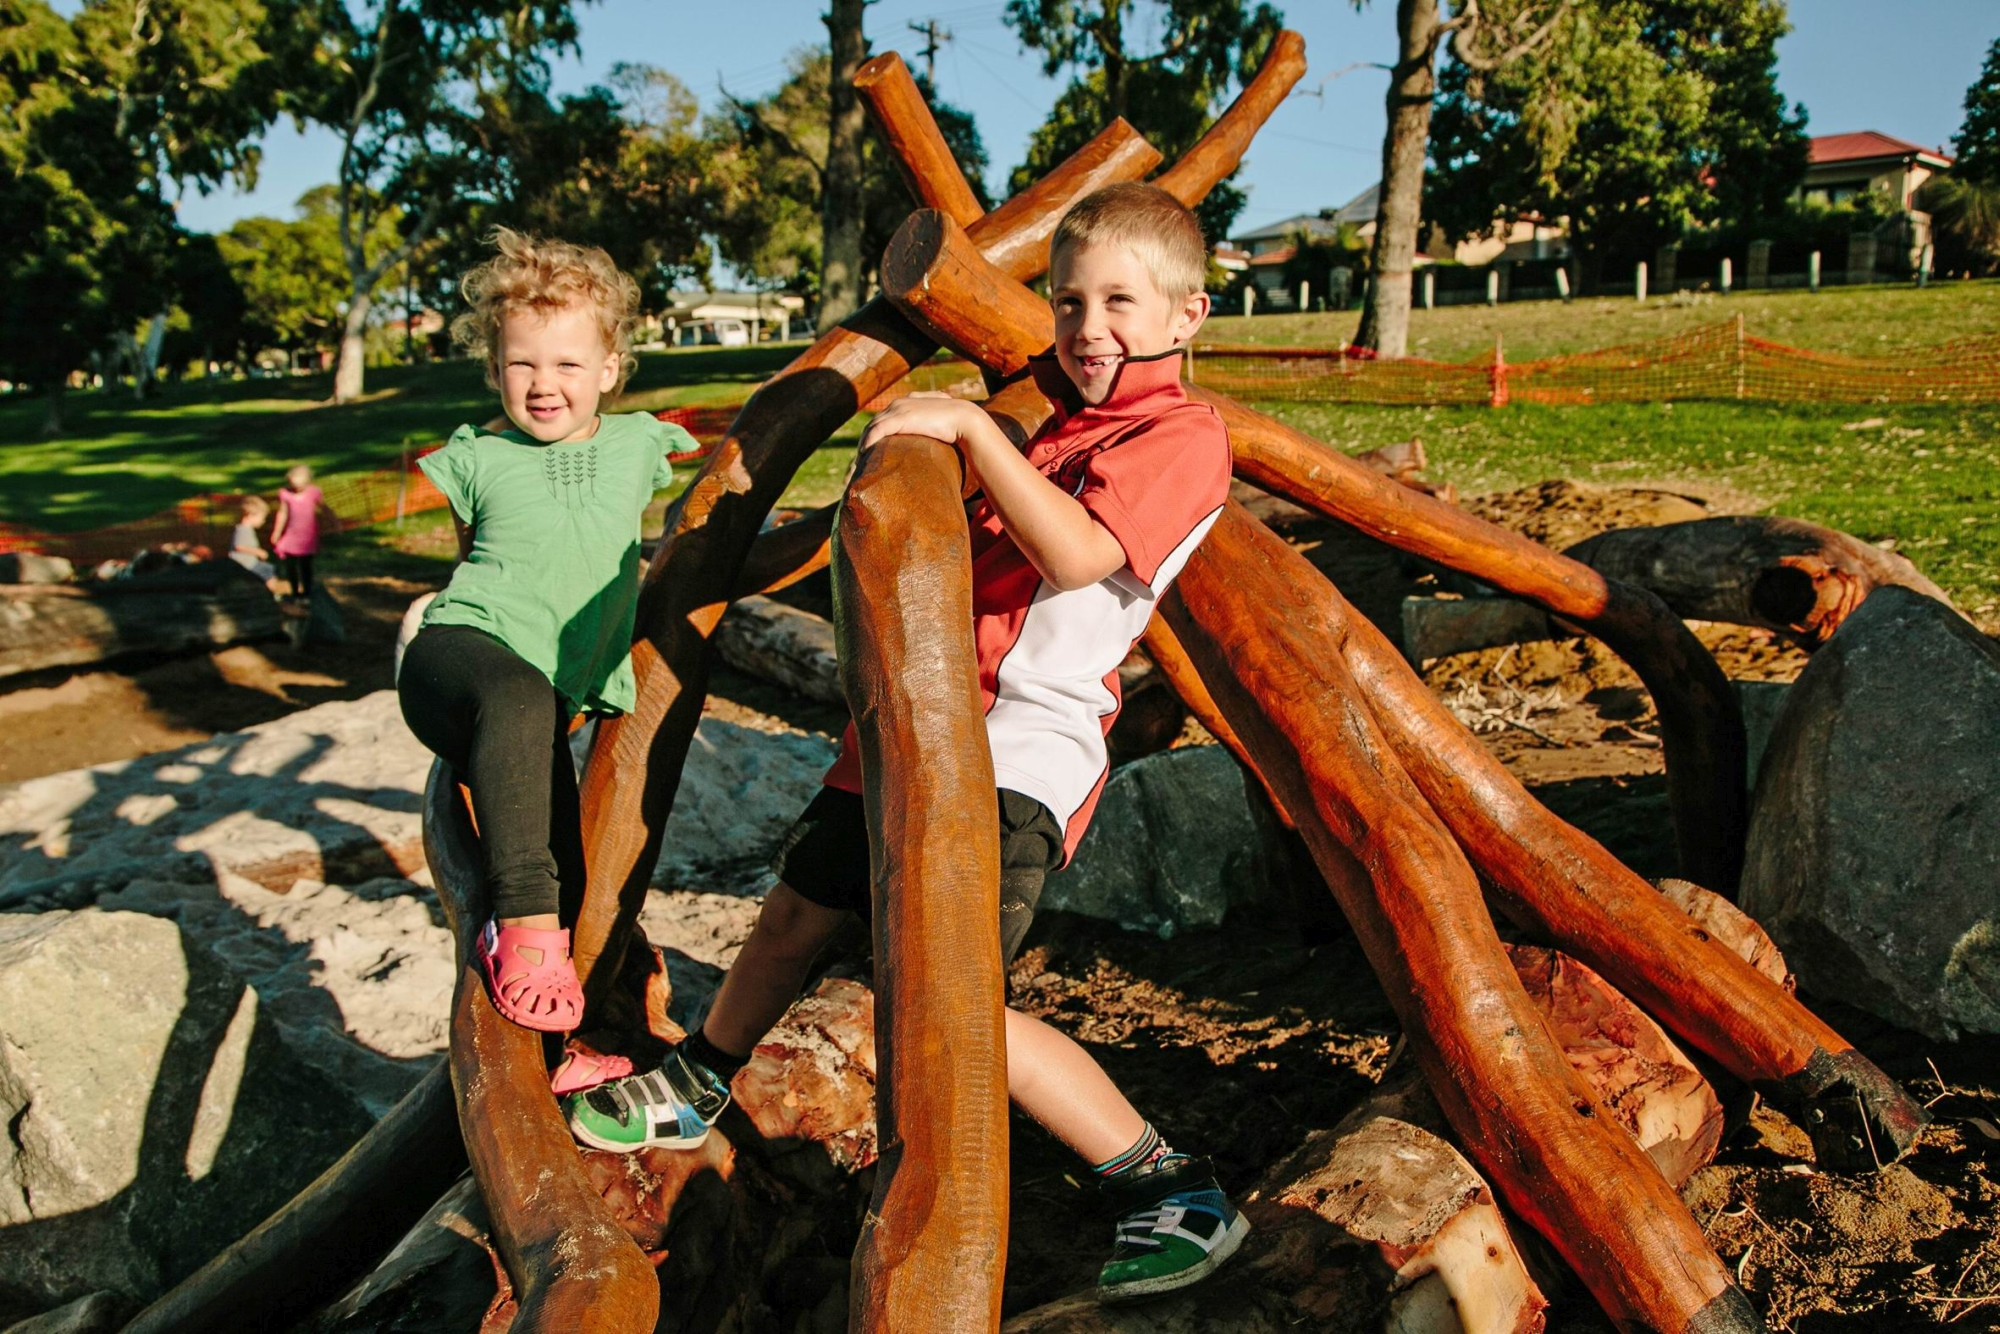 Willagee children Nate Shawscott (7) and his sister Taya (2) play in a newly constructed cubby at Webber Reserve's naturebased play area. Picture: Astrid Volzke